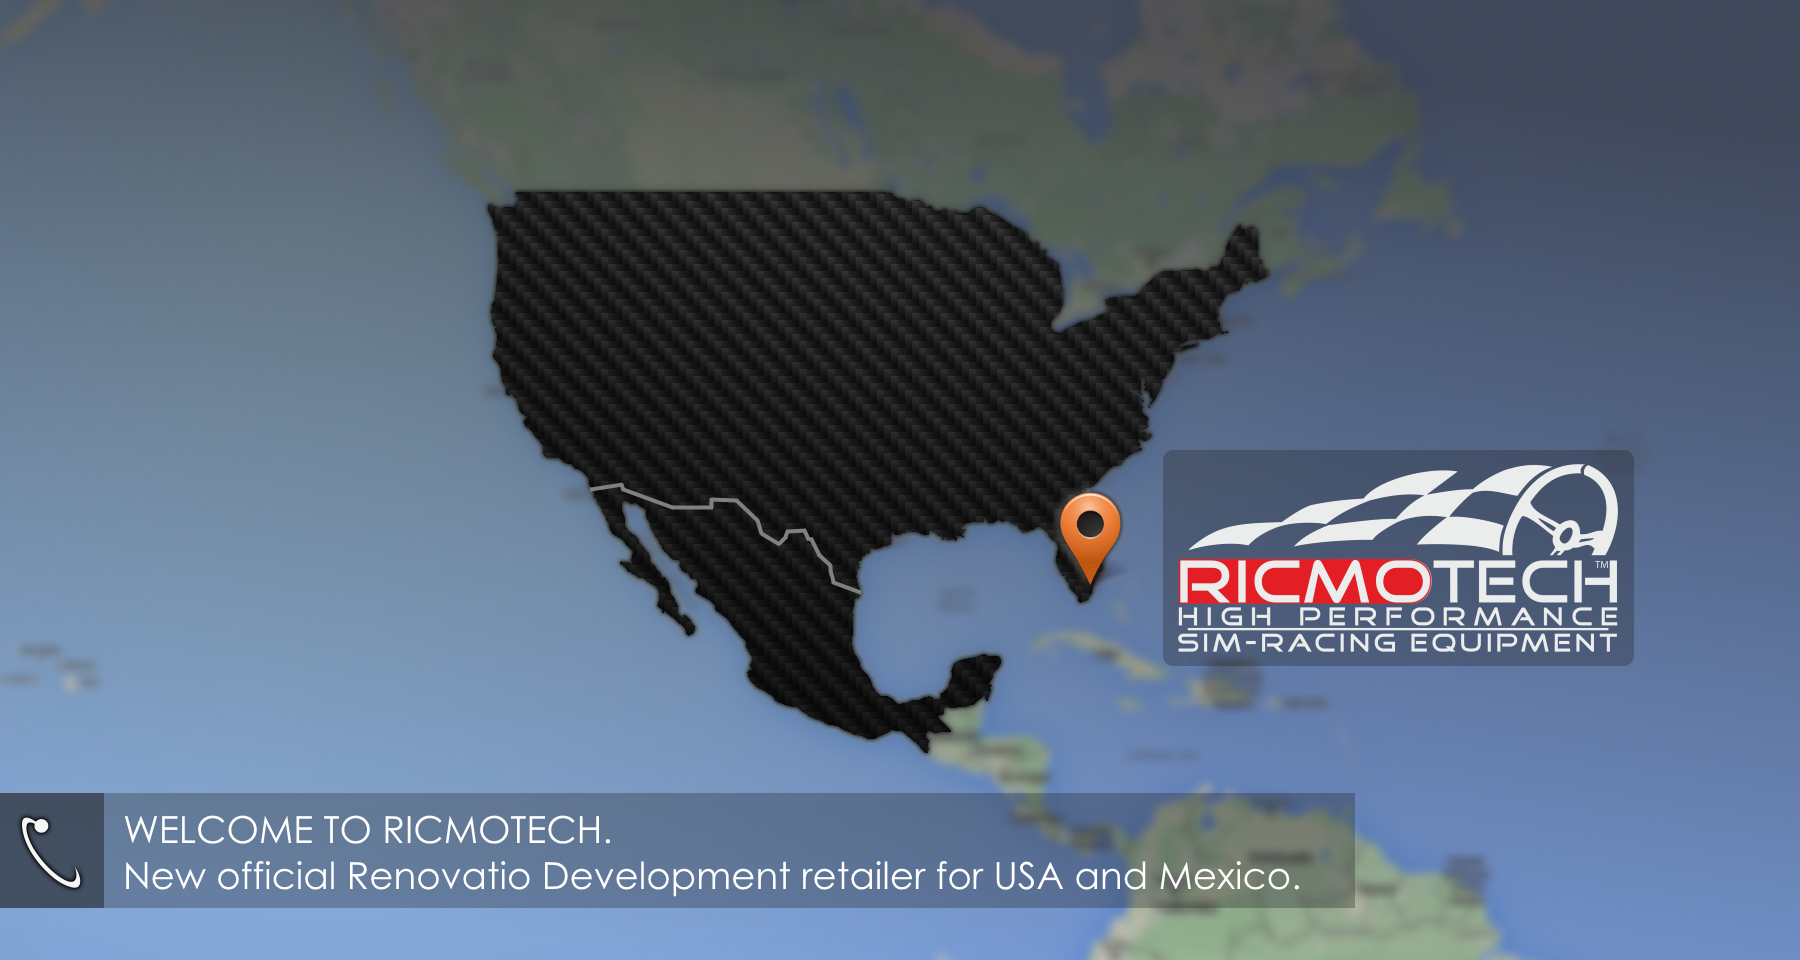 Official retailer for USA/Mexico